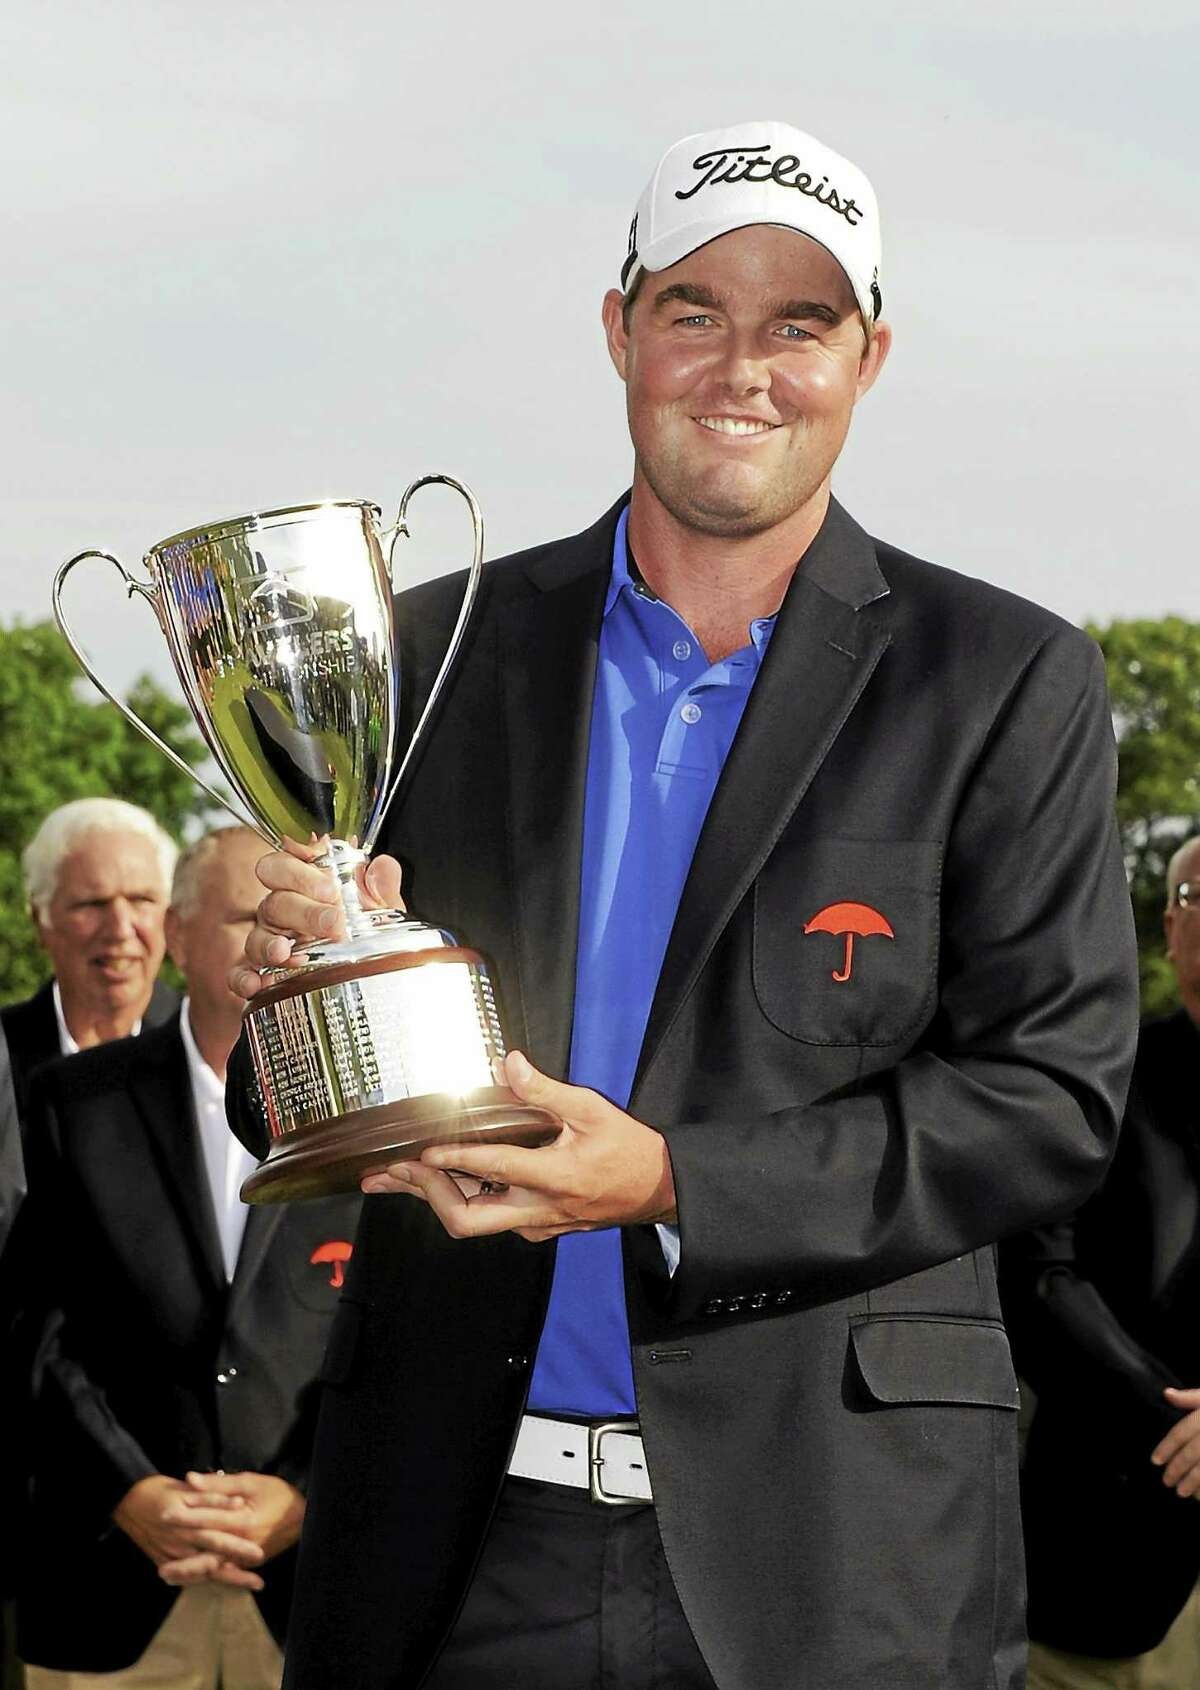 Marc Leishman celebrates after winning the Travelers Championship on June 24, 2012.